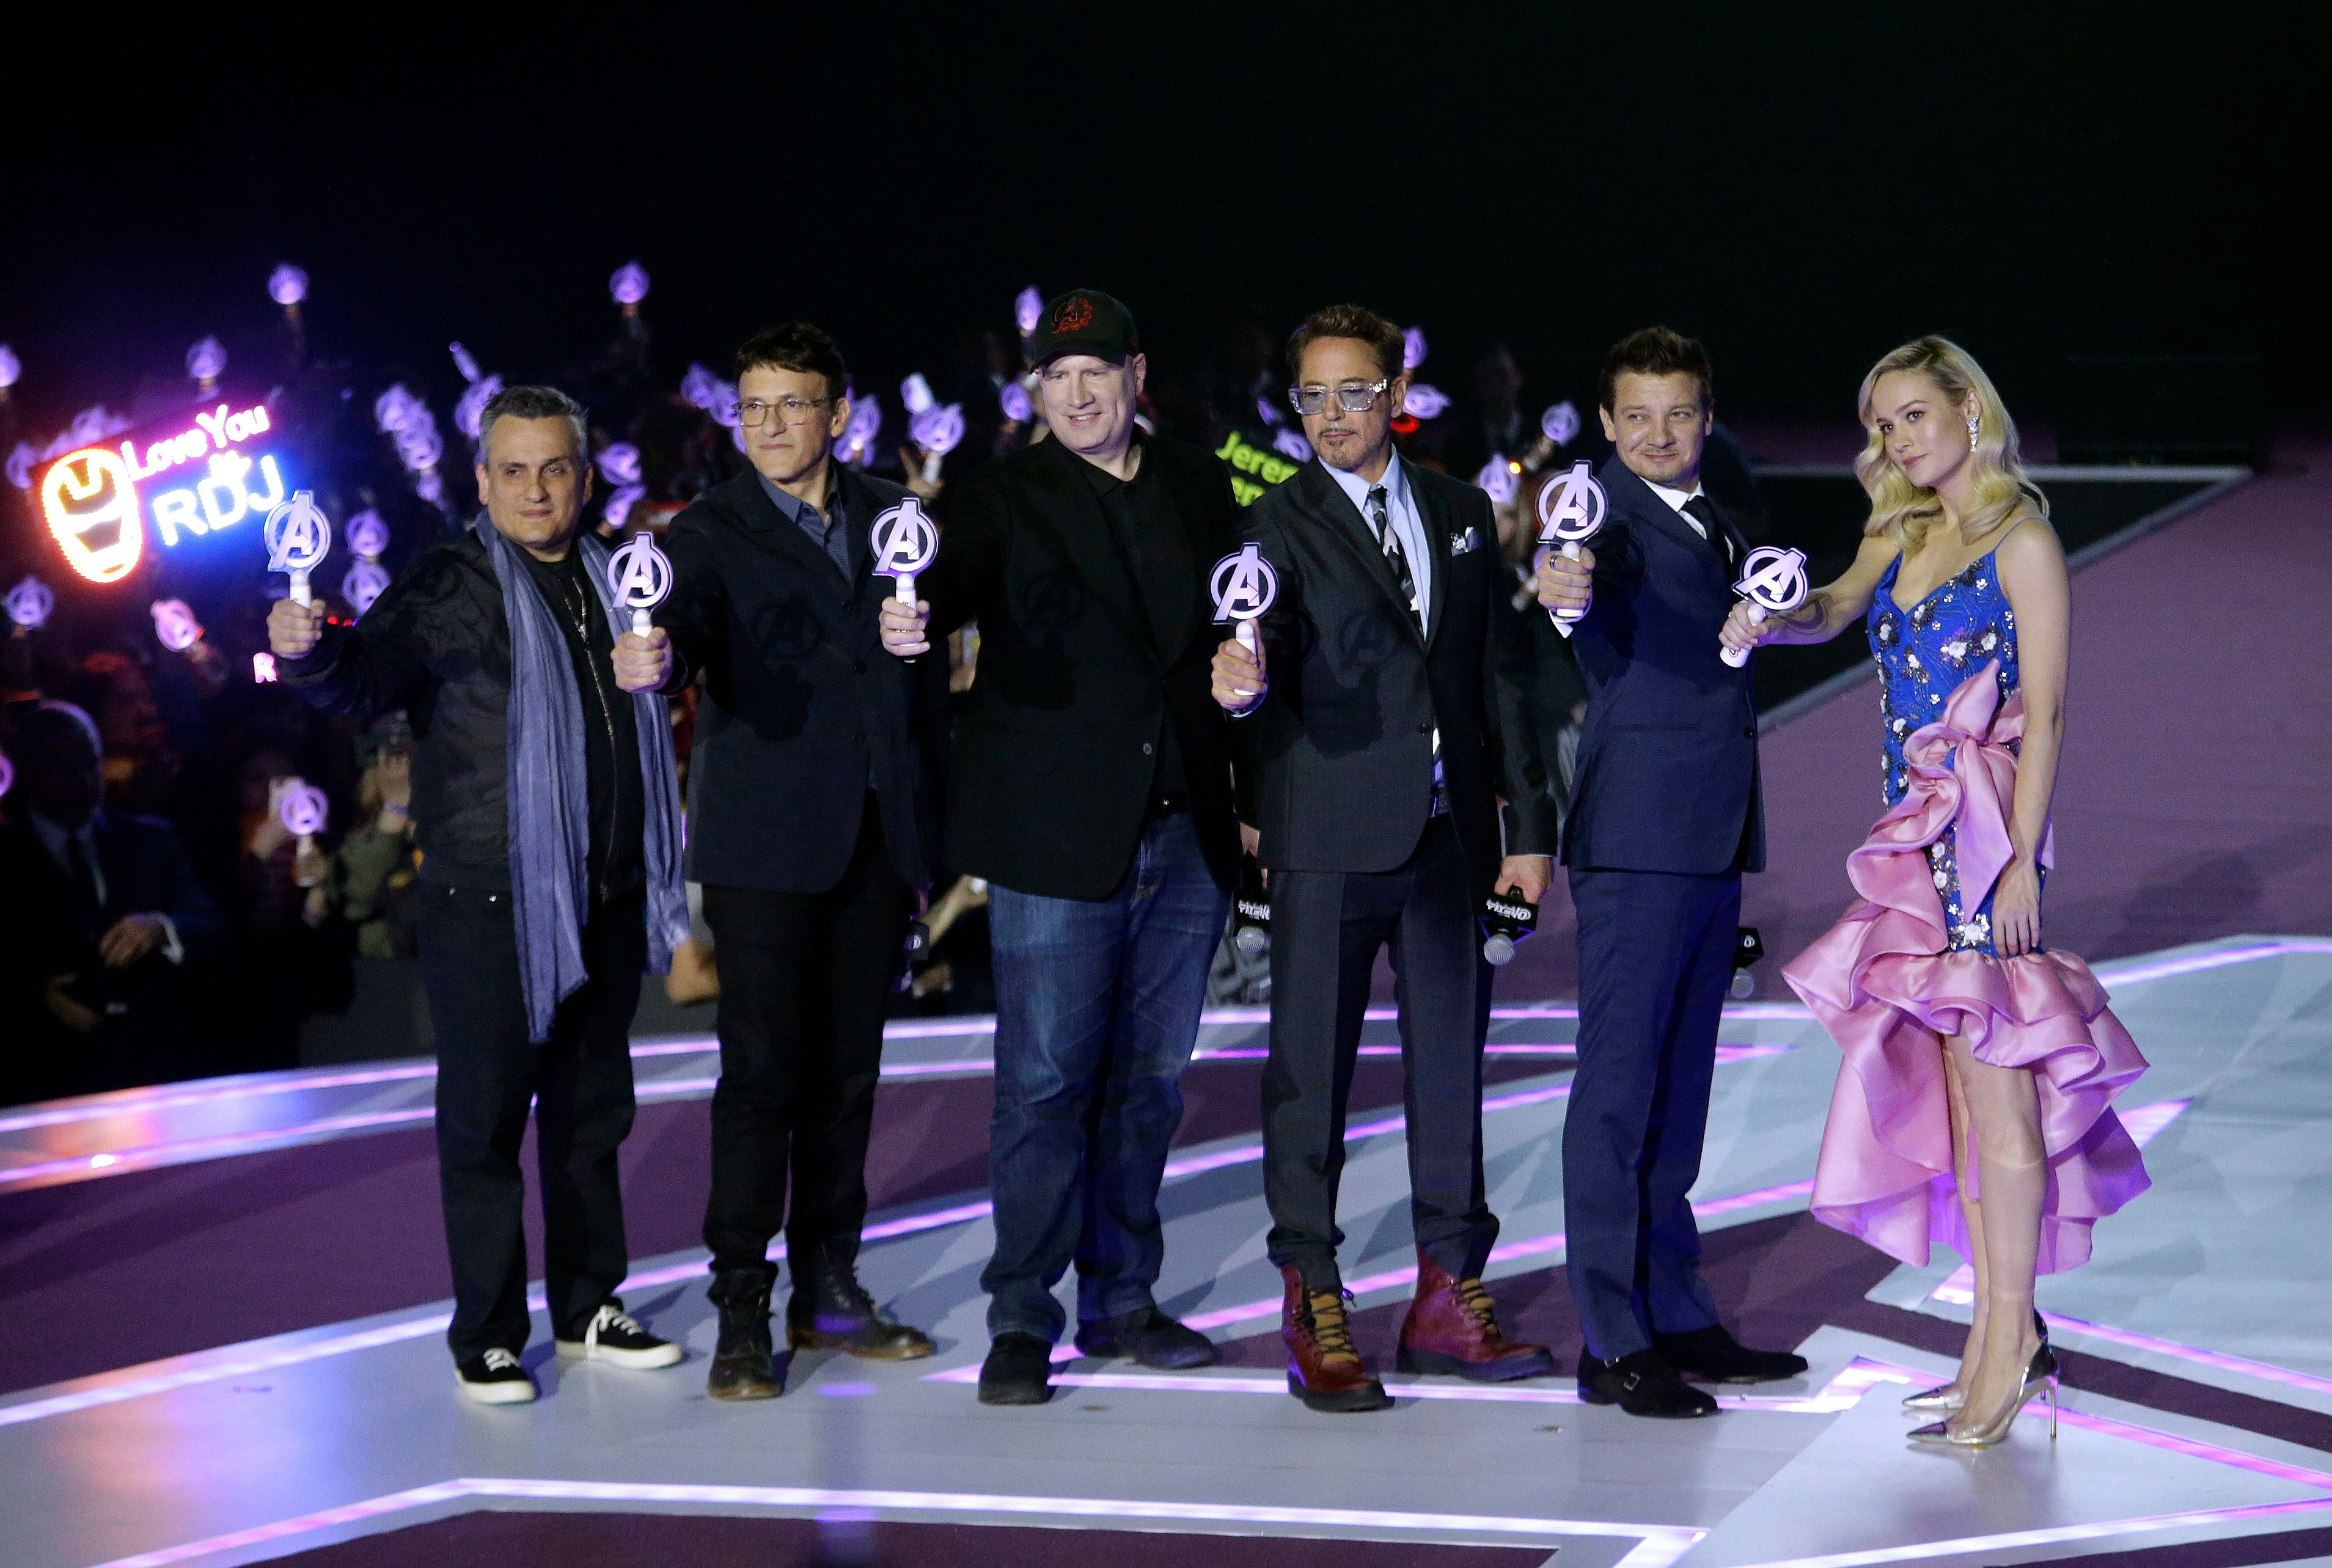 "Jeremy Renner, Brie Larson, Robert Downey Jr., Anthony Russo, Joe Russo, Kevin Feige. From right, actress Brie Larson, actor Jeremy Renner, actor Robert Downey Jr., President of Marvel Studios Kevin Feige, director Anthony Russo and Joe Russo pose during an event to promote their latest film ""Avengers Endgame"" in Seoul, South Korea, . The movie will open on April 24 in South KoreaAvengers, Seoul, South Korea - 15 Apr 2019"